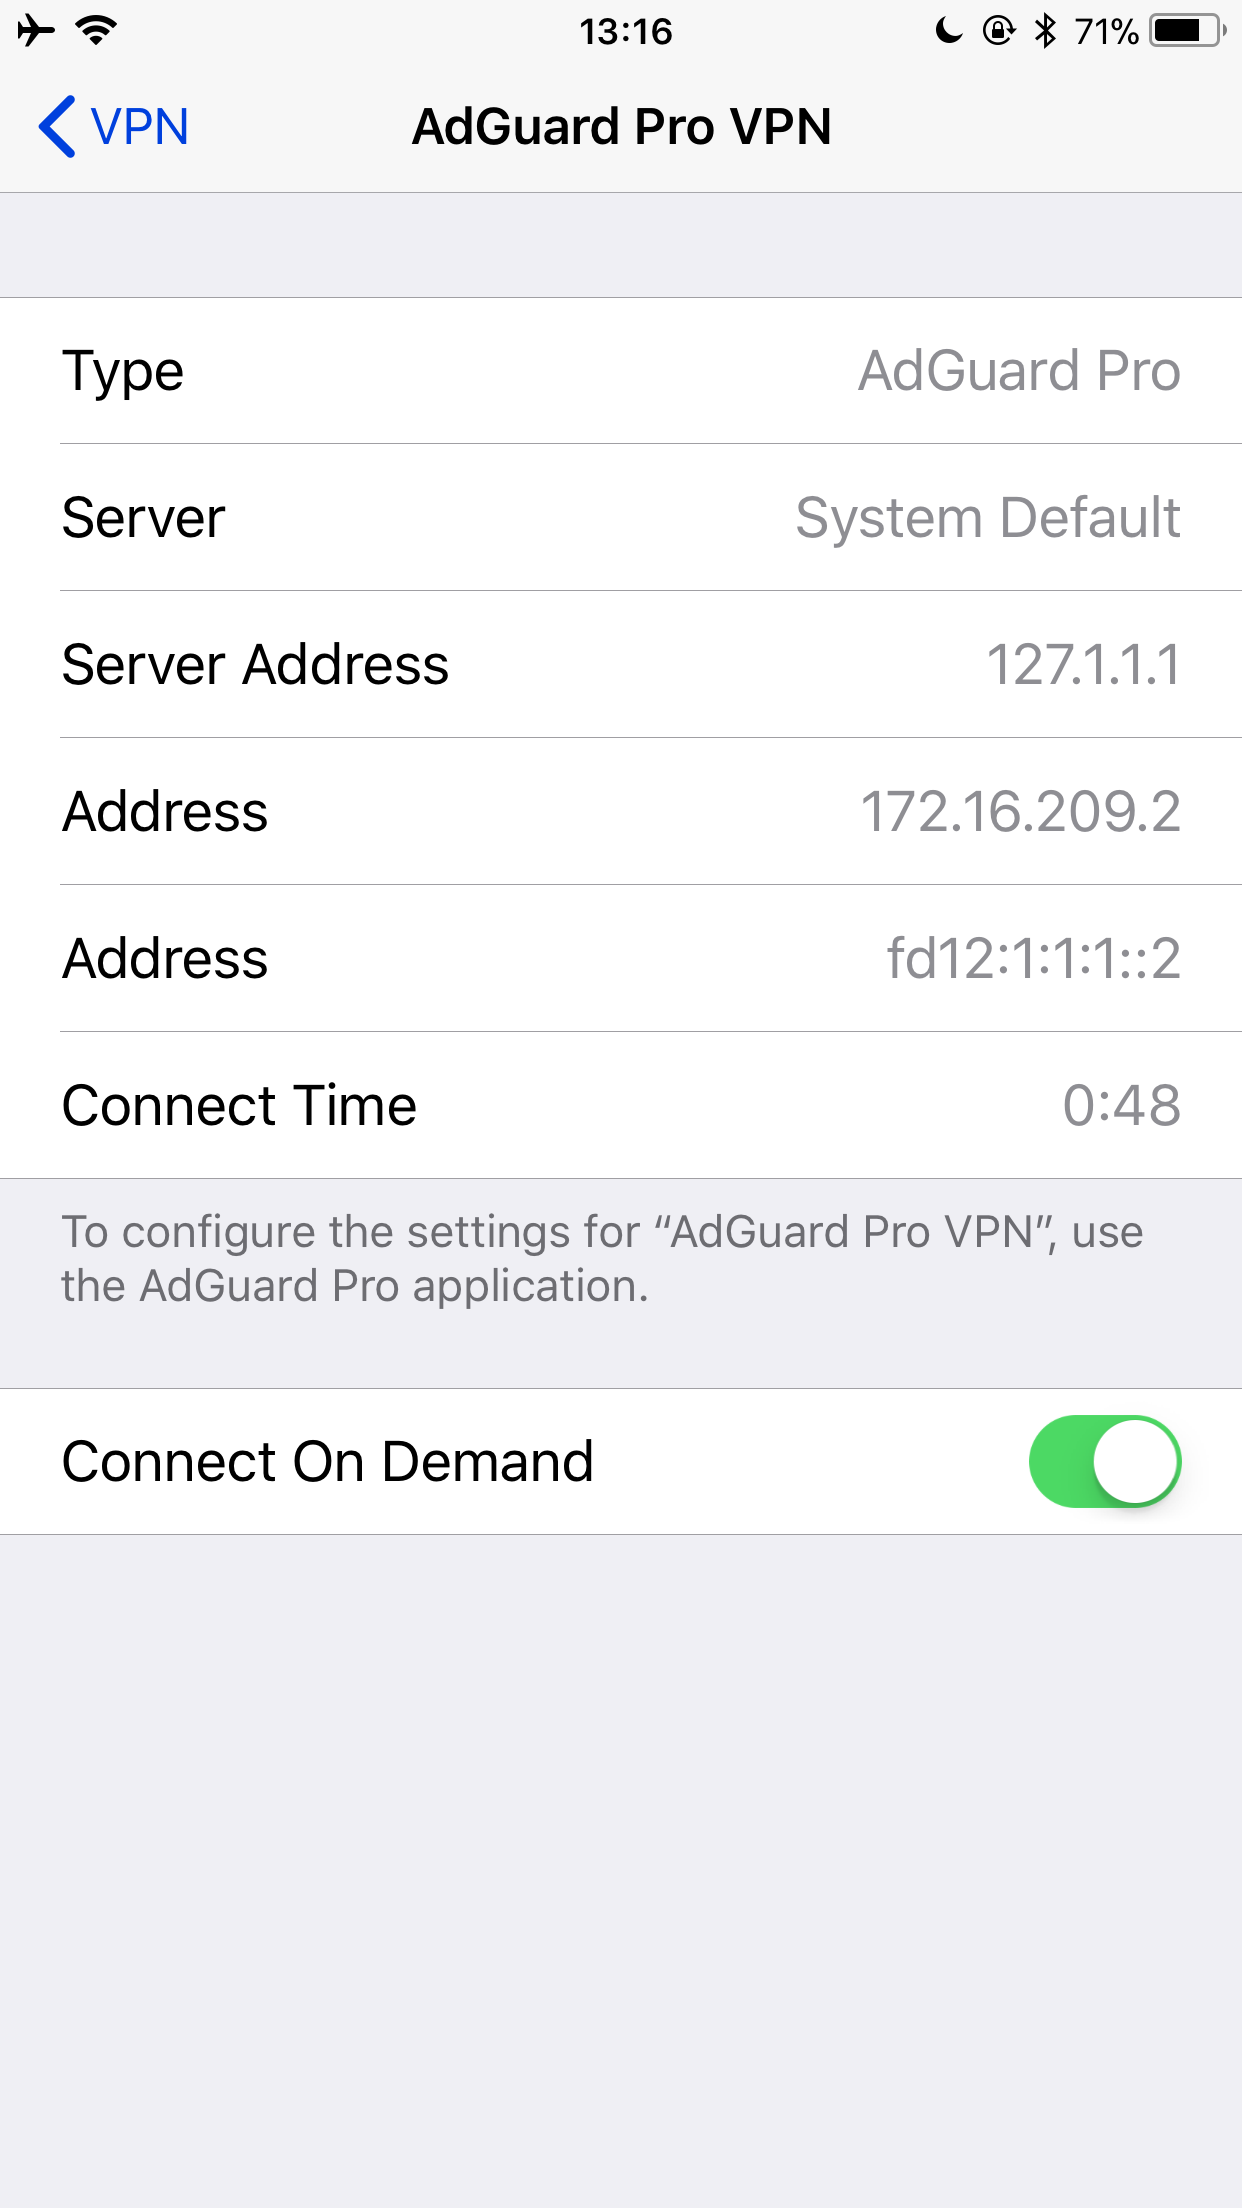 After having reinstalling AdGuard Pro there are now 2 AGP